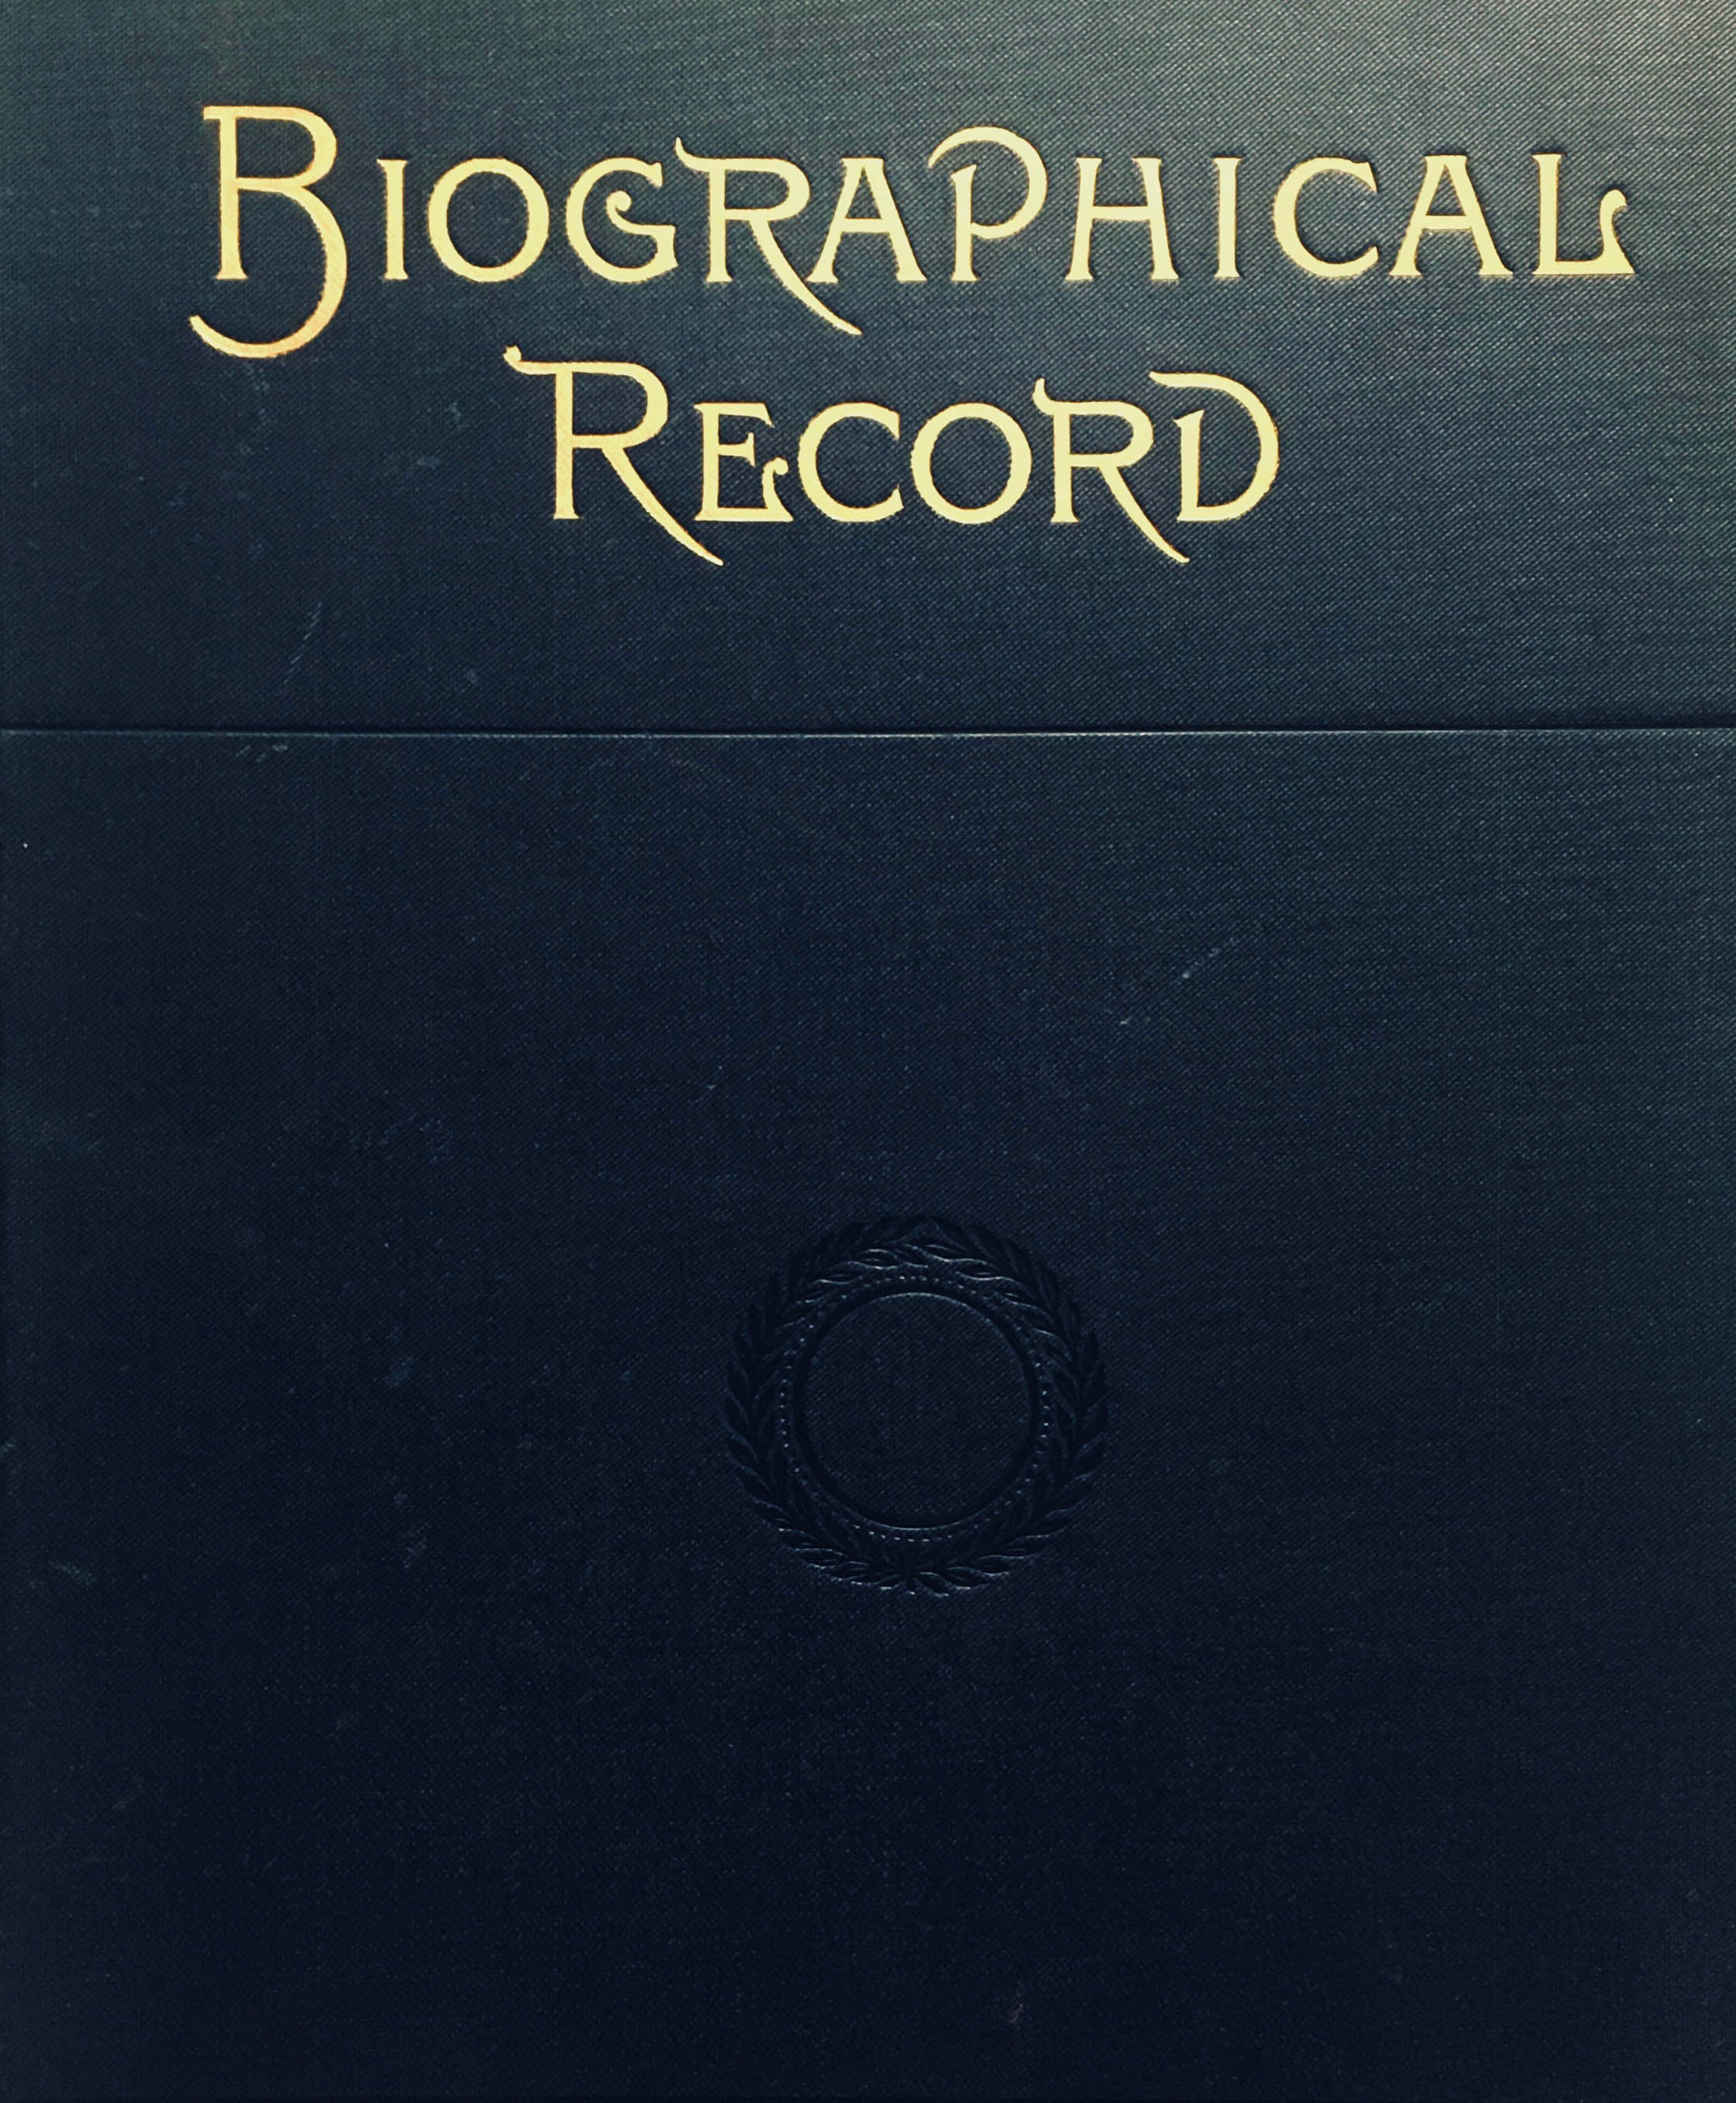 Cover of the book Biographical Record of Officers and Graduates from 1887